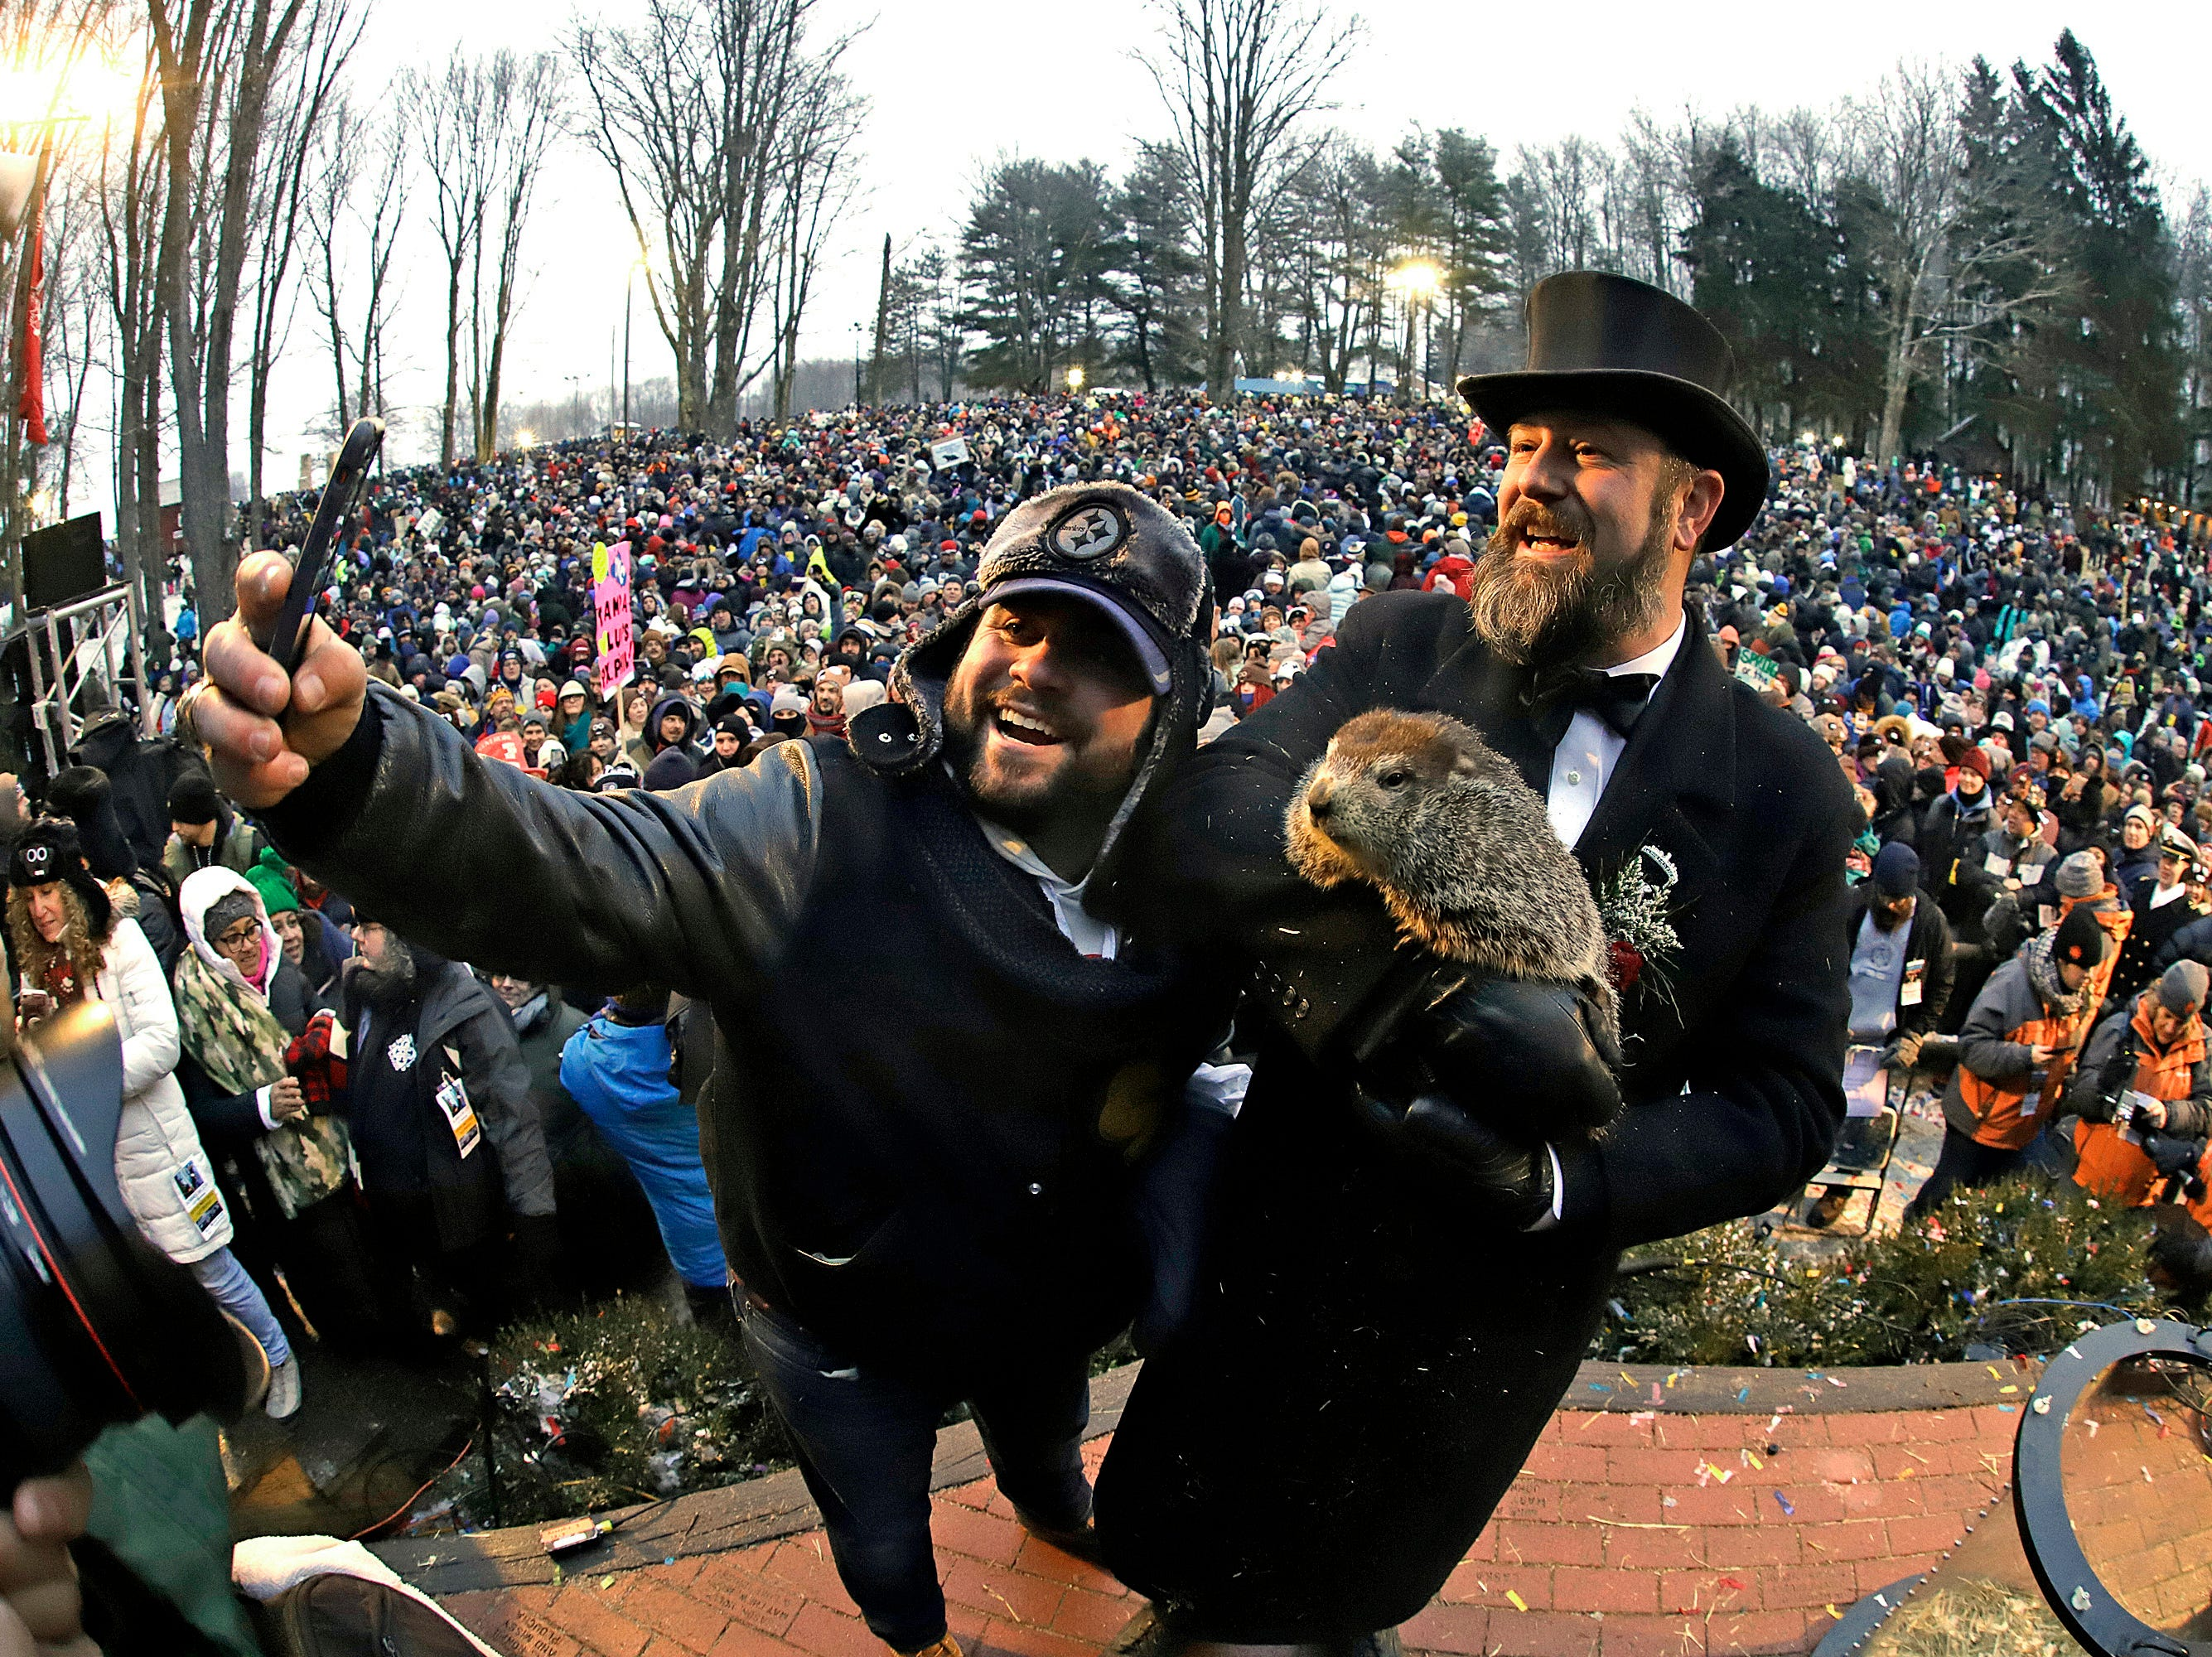 Groundhog Club co-handler Al Dereume, right, holds Punxsutawney Phil, the weather prognosticating groundhog, and poses for a selfie with a groundhog fan.